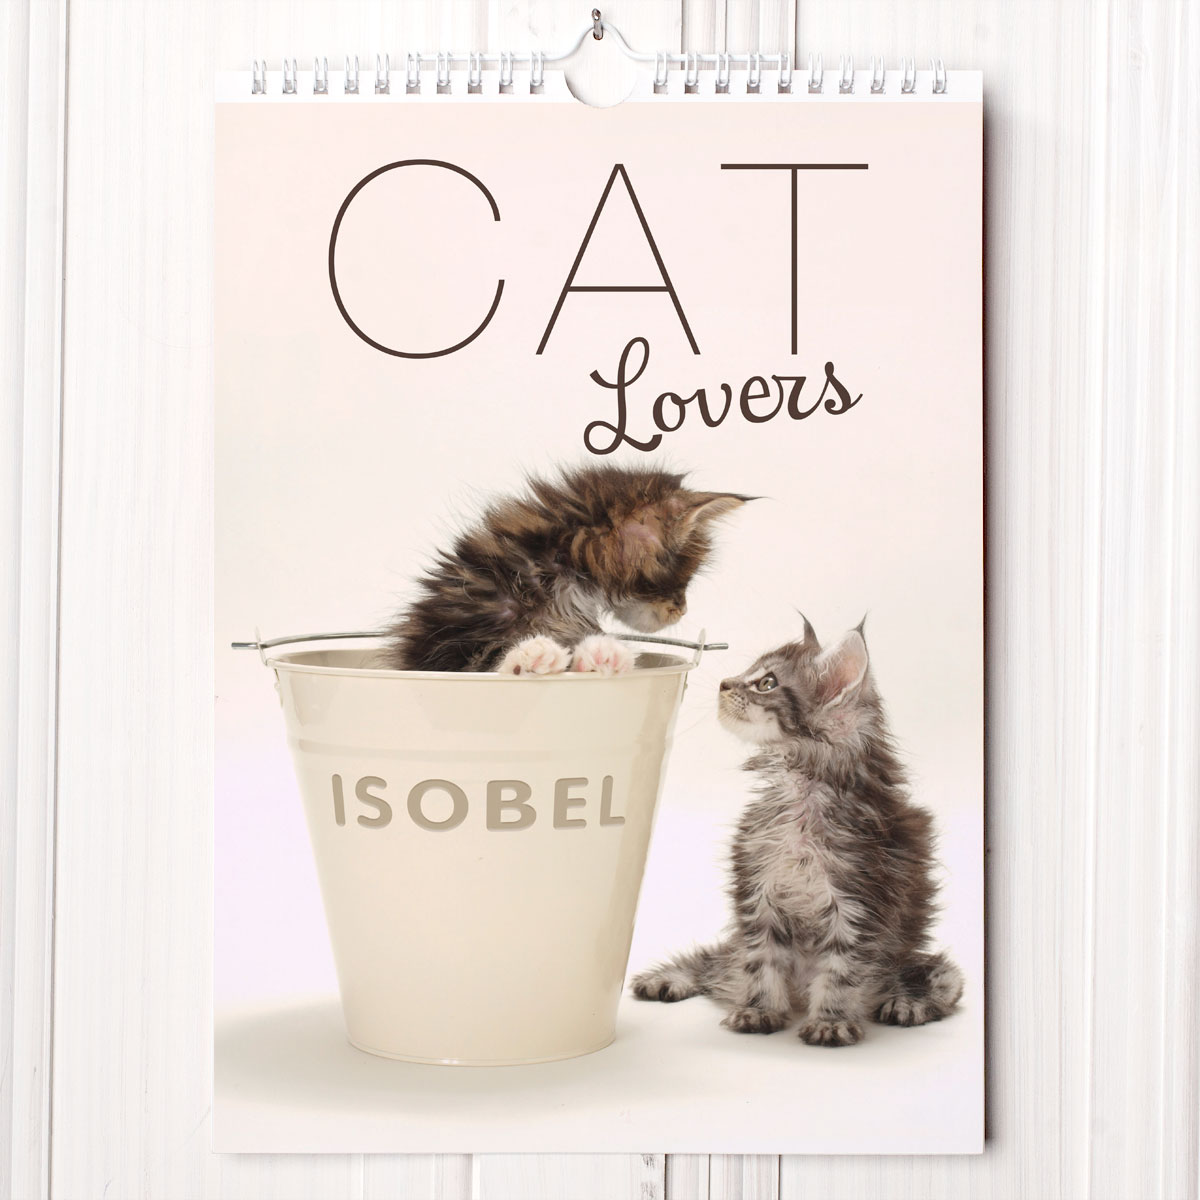 Unique Cat Lover Gift Personalised Calendar Cat Lovers Gettingpersonal Co Uk